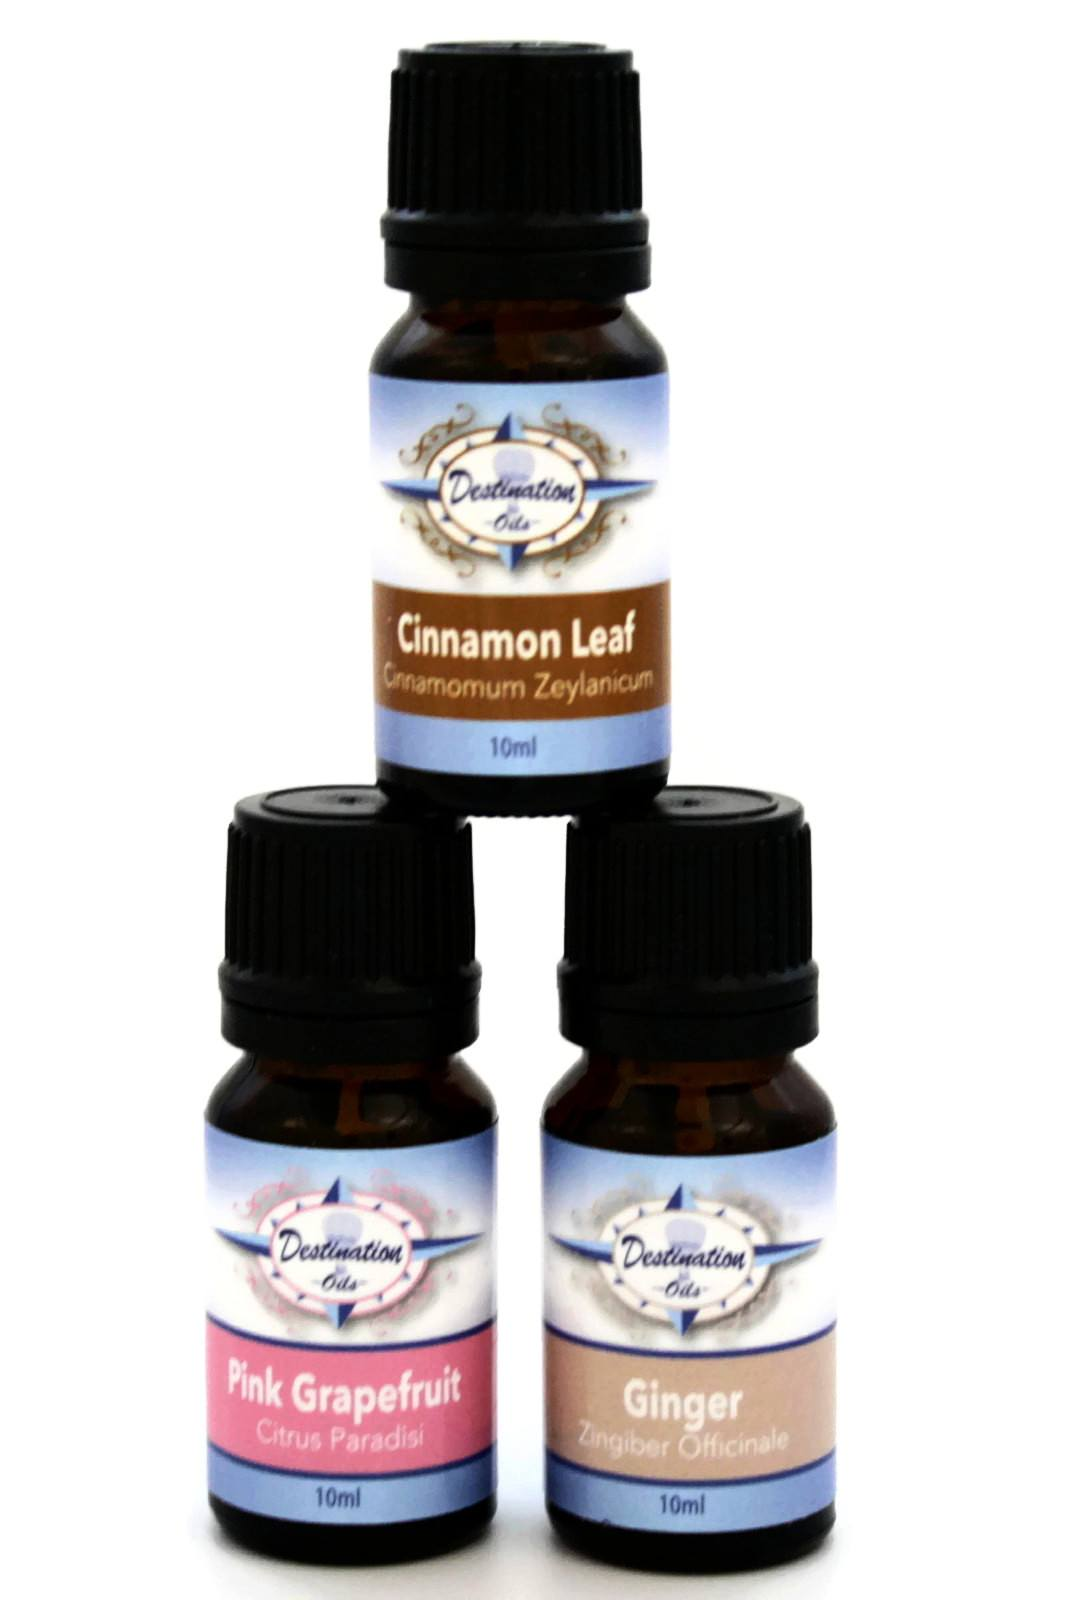 Burn Boost Essential Oil Gift Set- Ginger, Pink Grapefruit, Cinnamon Leaf-Gift Sets-Destination Oils